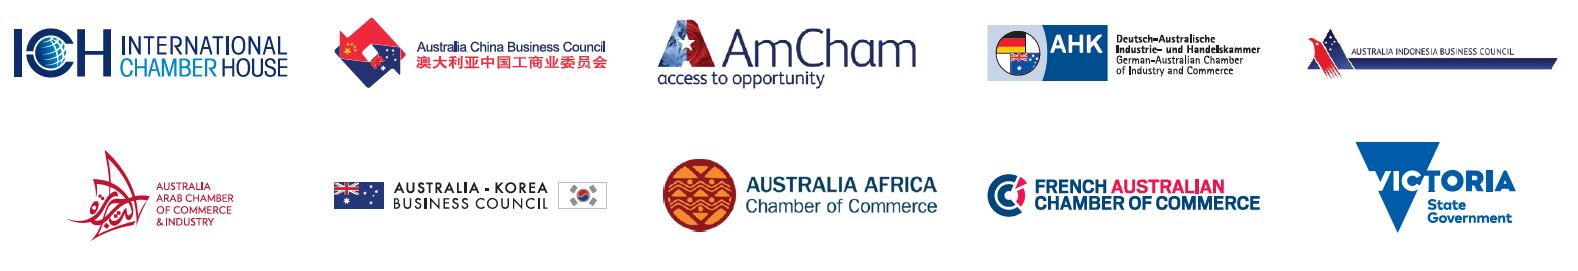 AMCHAM - International Chamber House